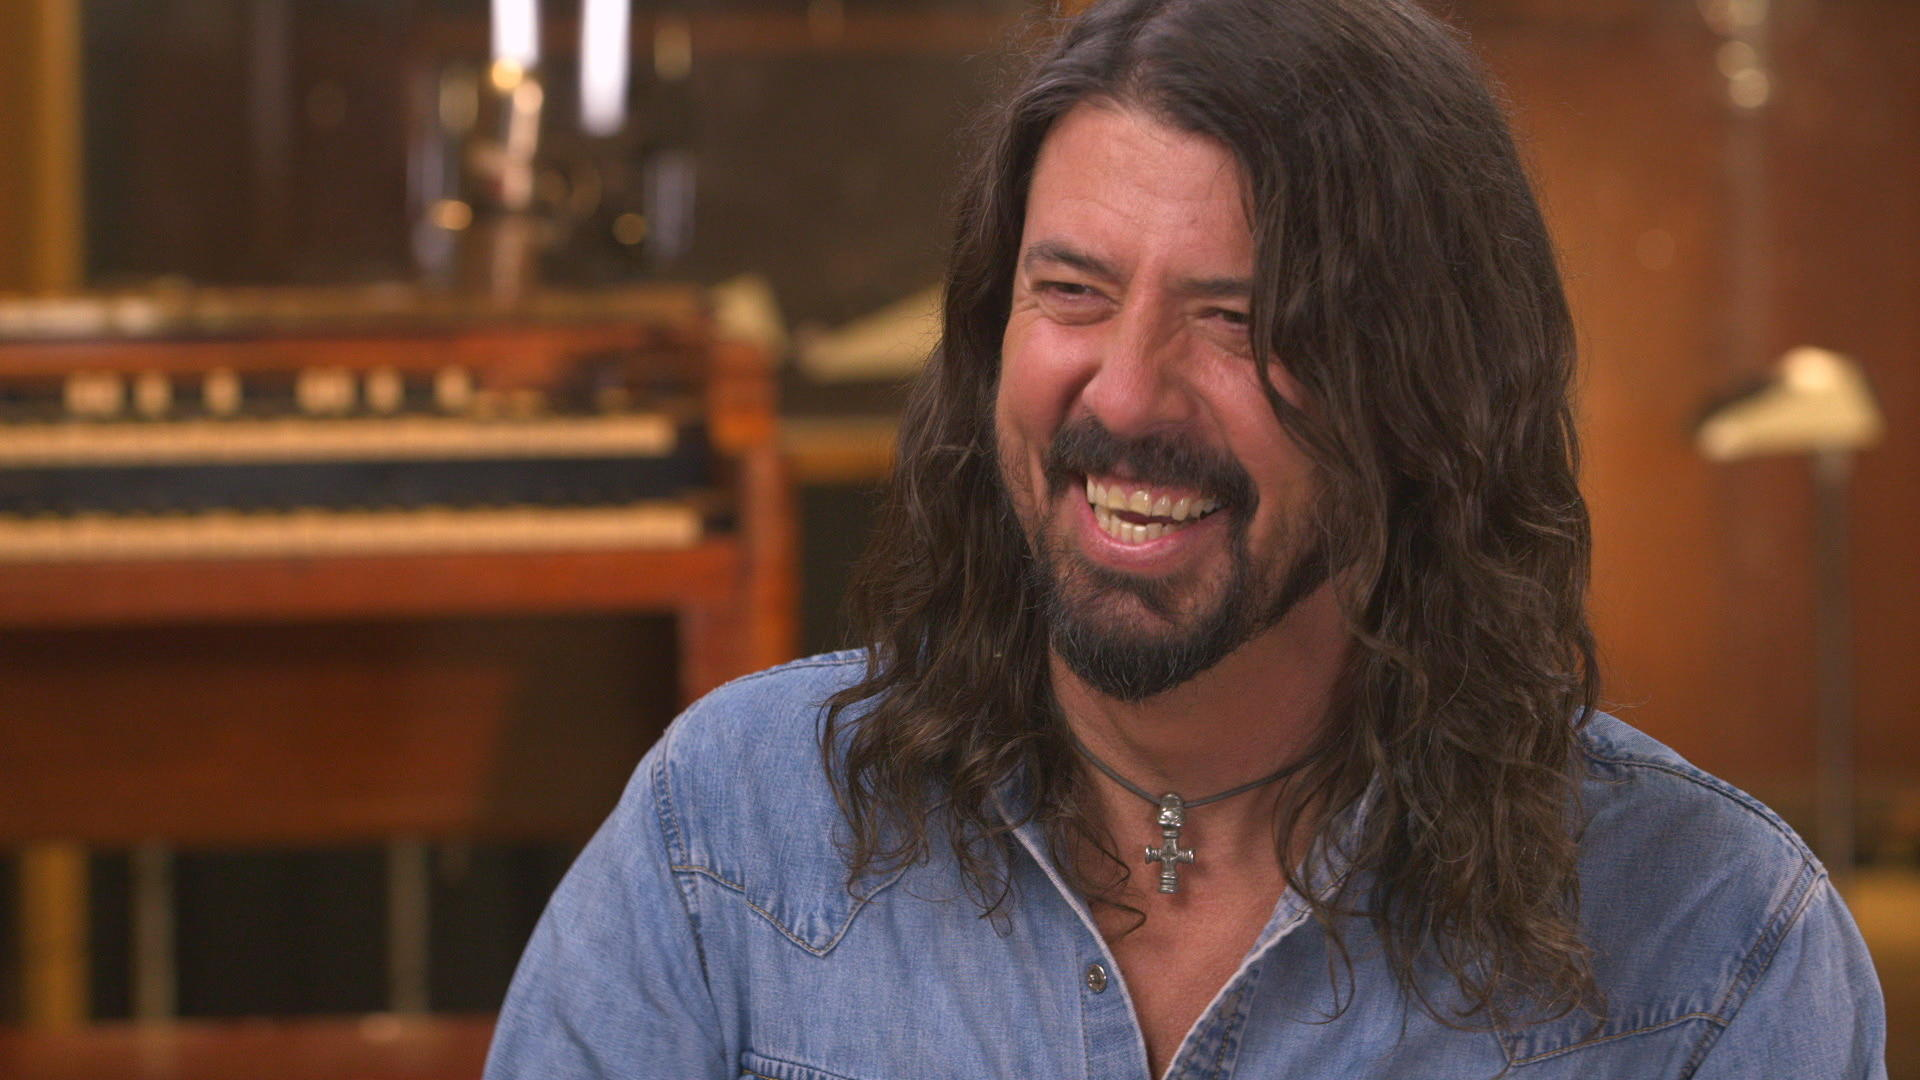 545a3f28d Dave Grohl of Foo Fighters: